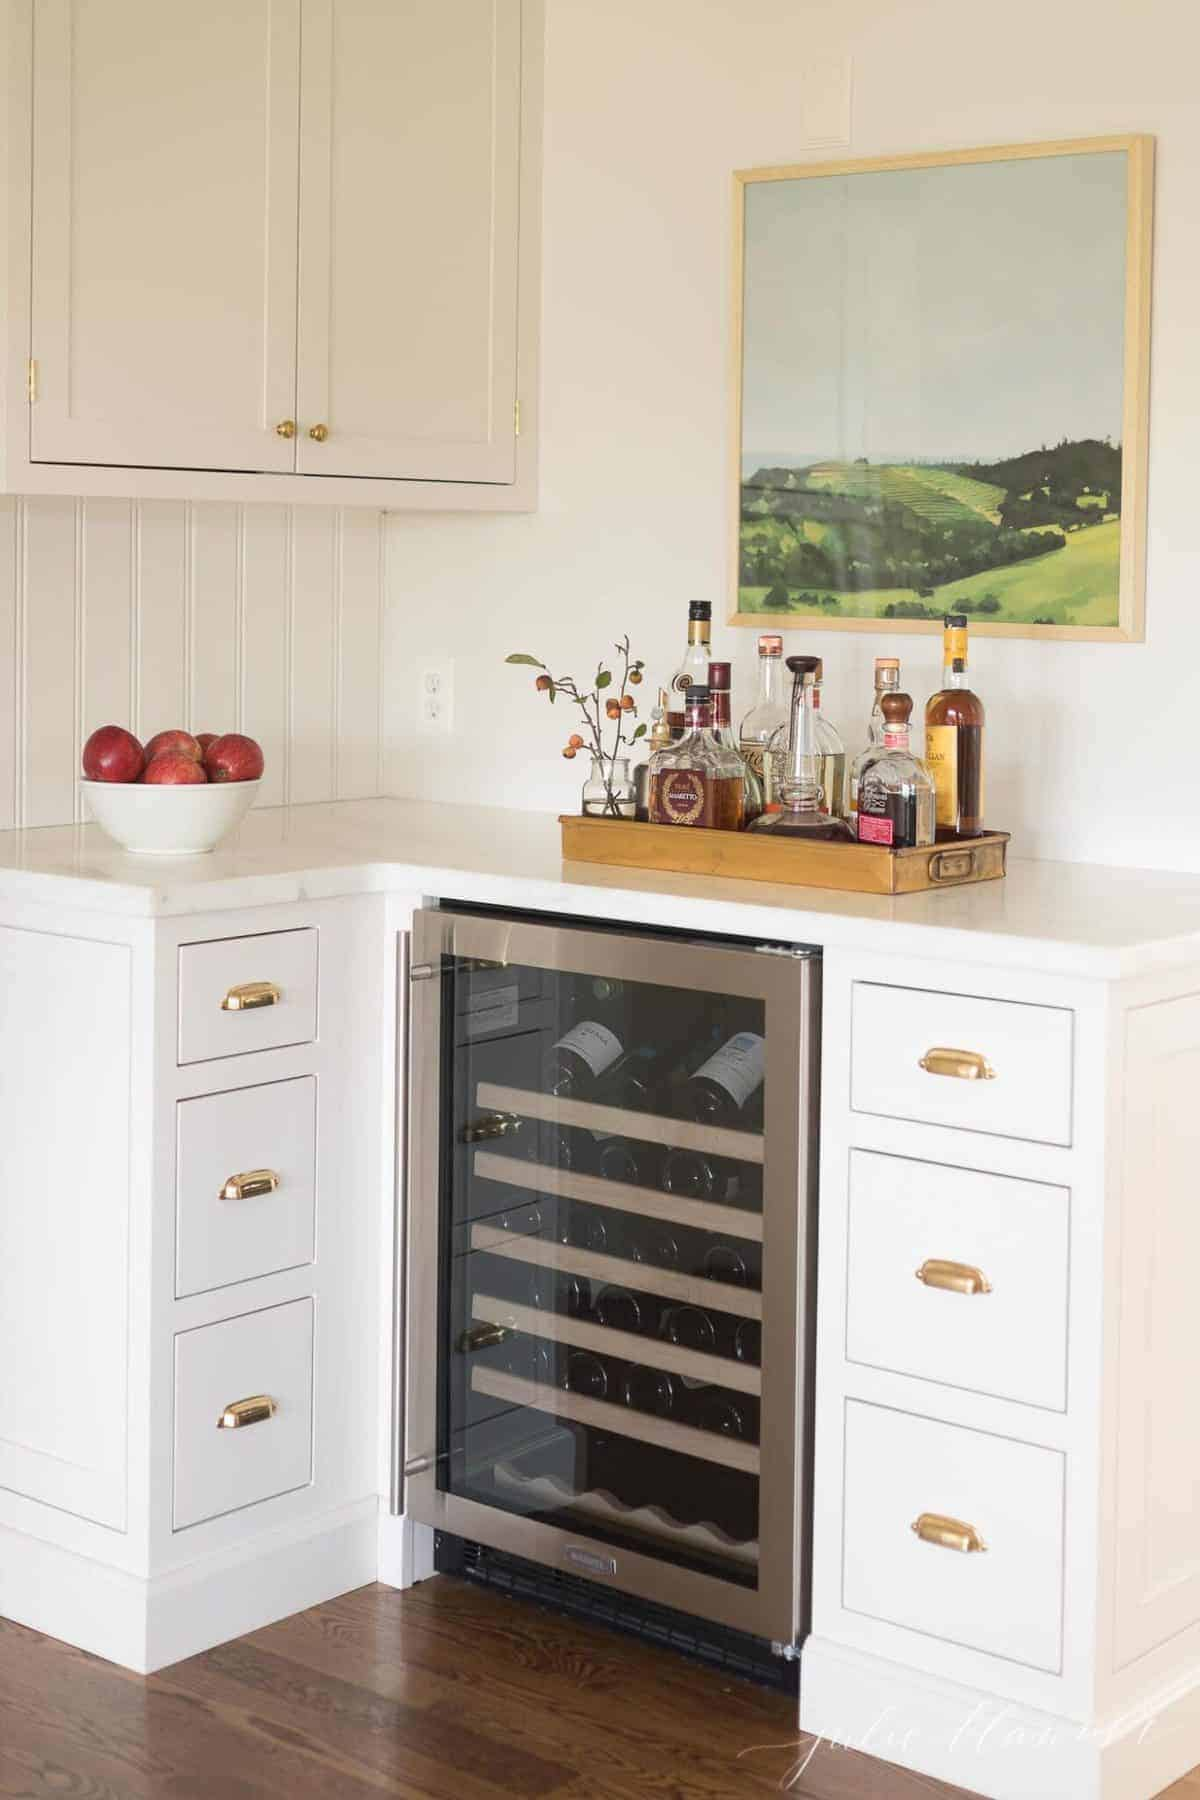 A wine bar area in a kitchen featuring shaker cabinet doors and flat drawer fronts.